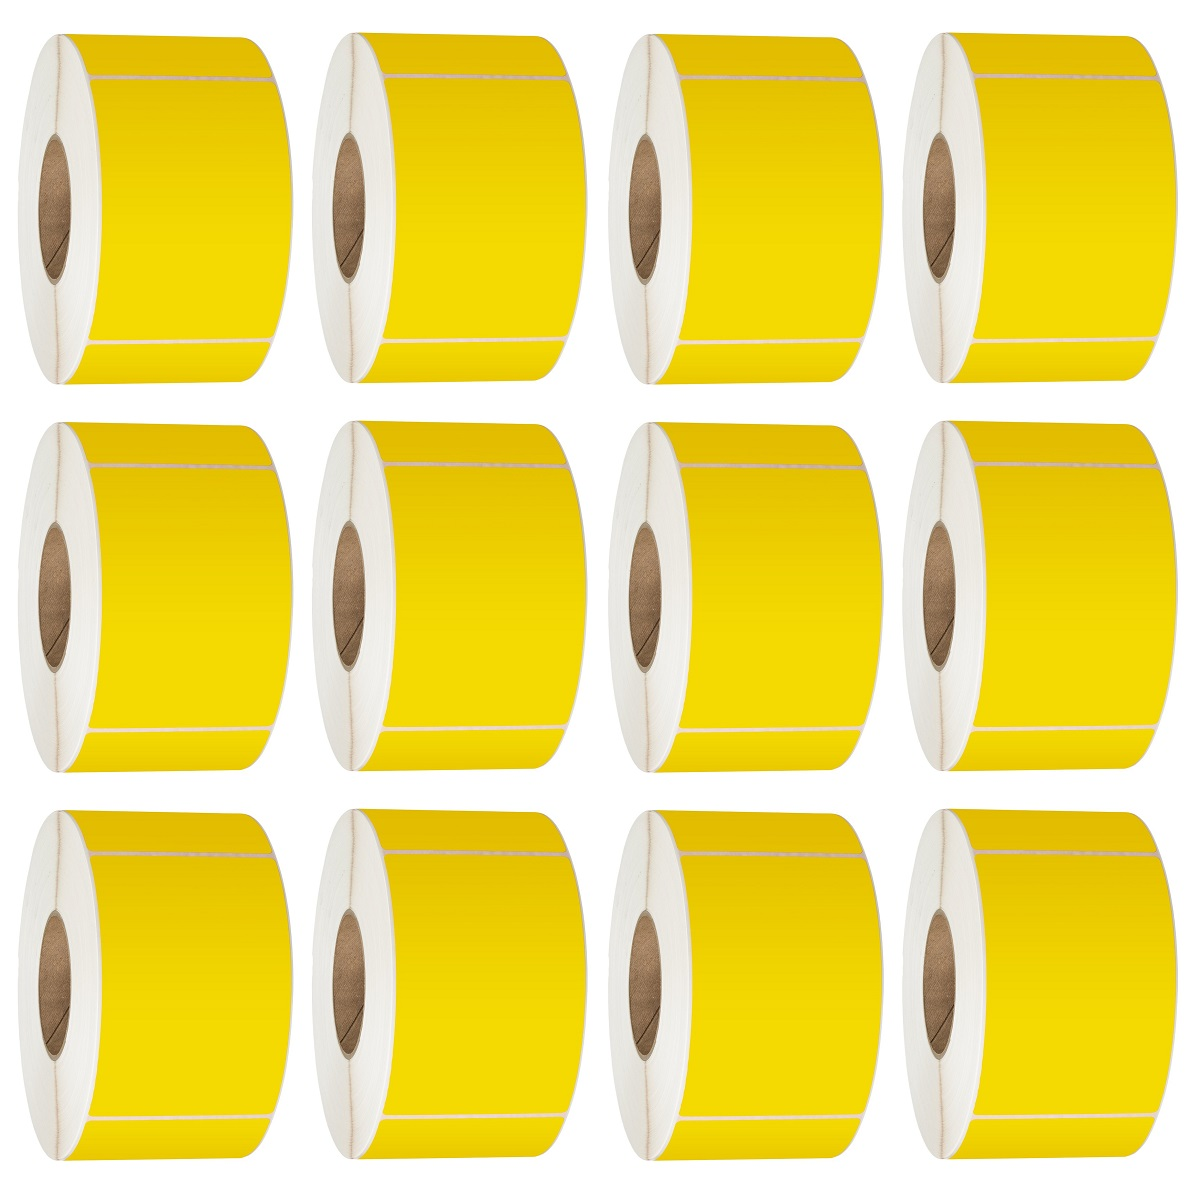 76X48 Thermal Transfer Labels 3000/Roll 76mm Core Yellow - 12 Rolls